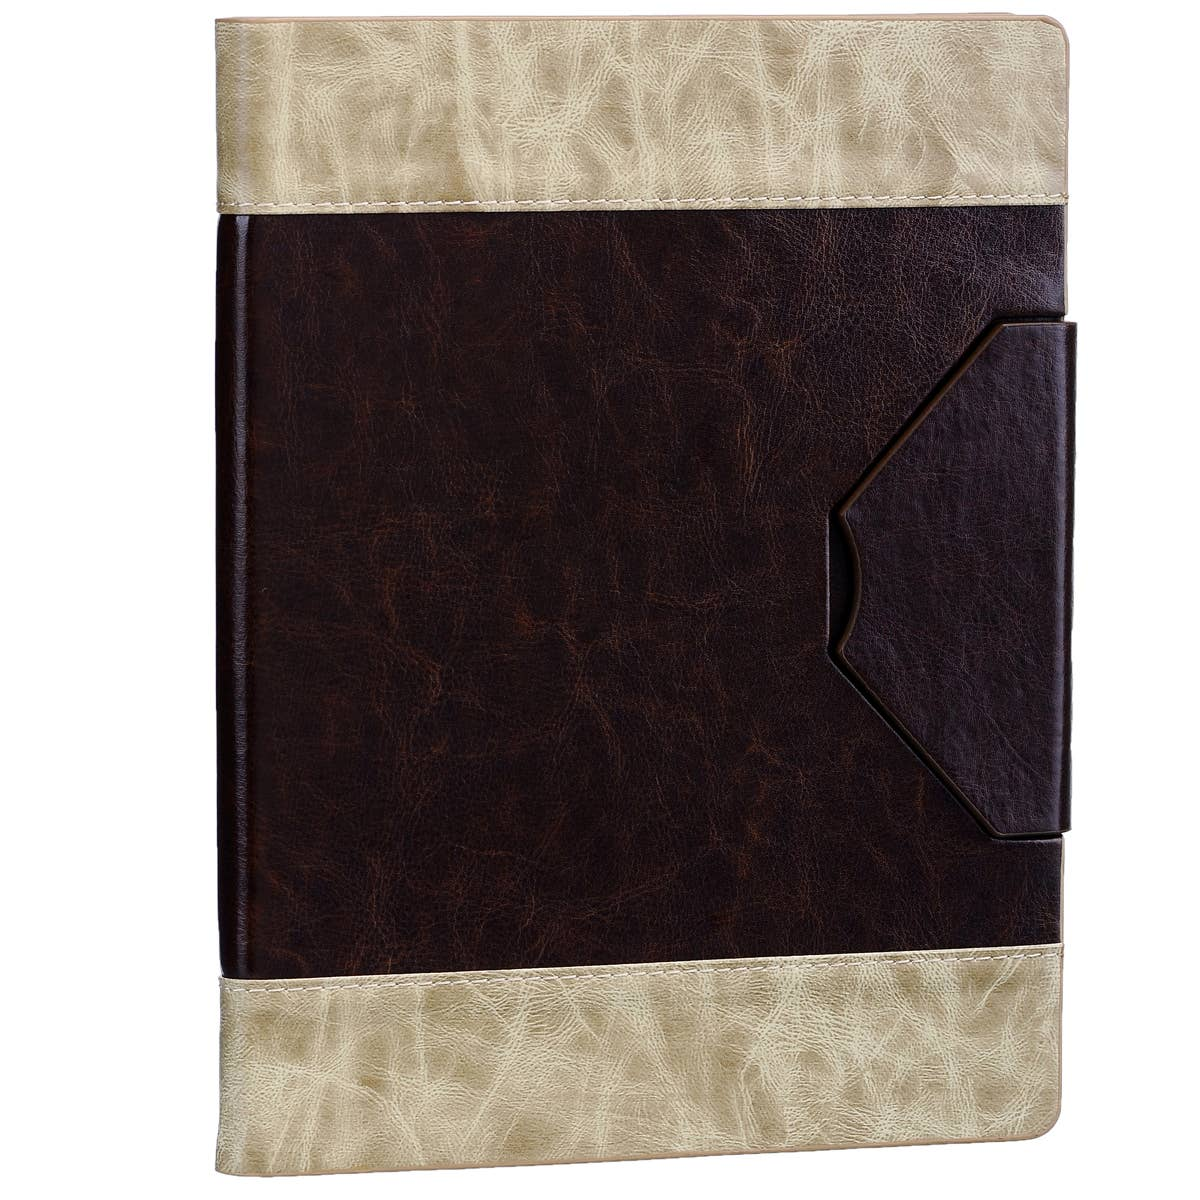 Cream and Brown iPad Cover